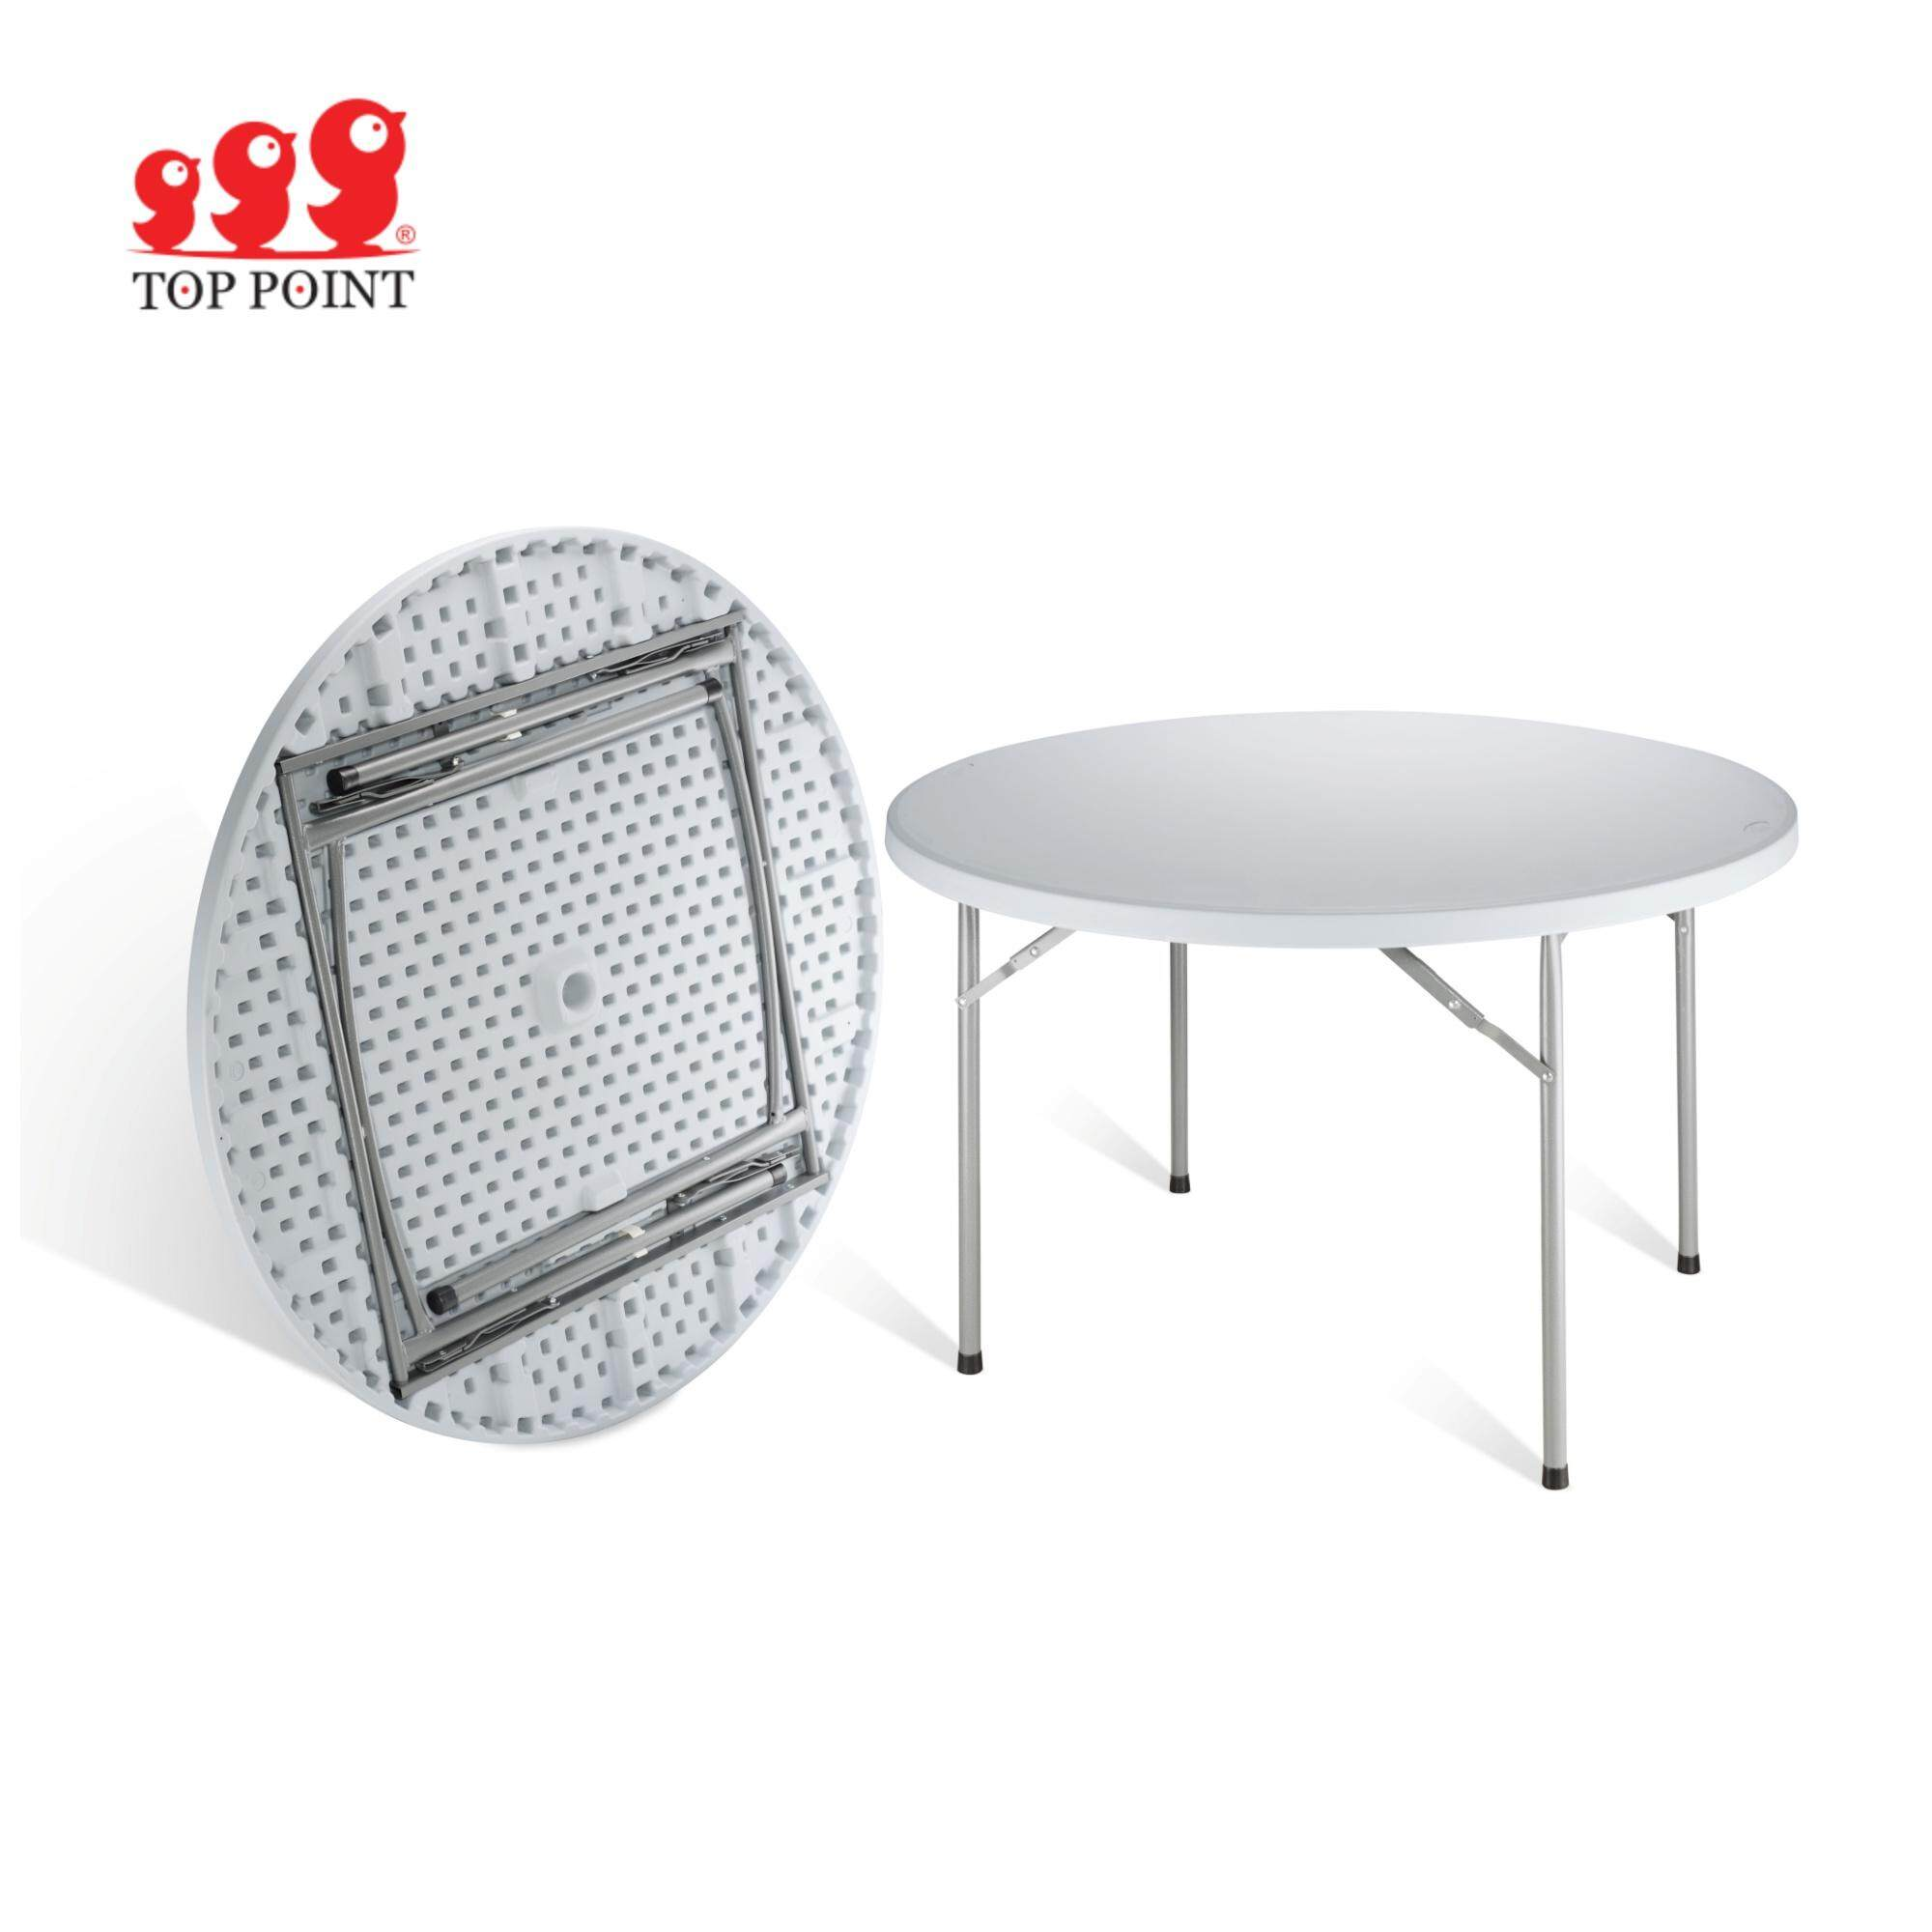 Top Point Round Table / Banquet Table / Restaurant Table / Dining Table / Meeting Table